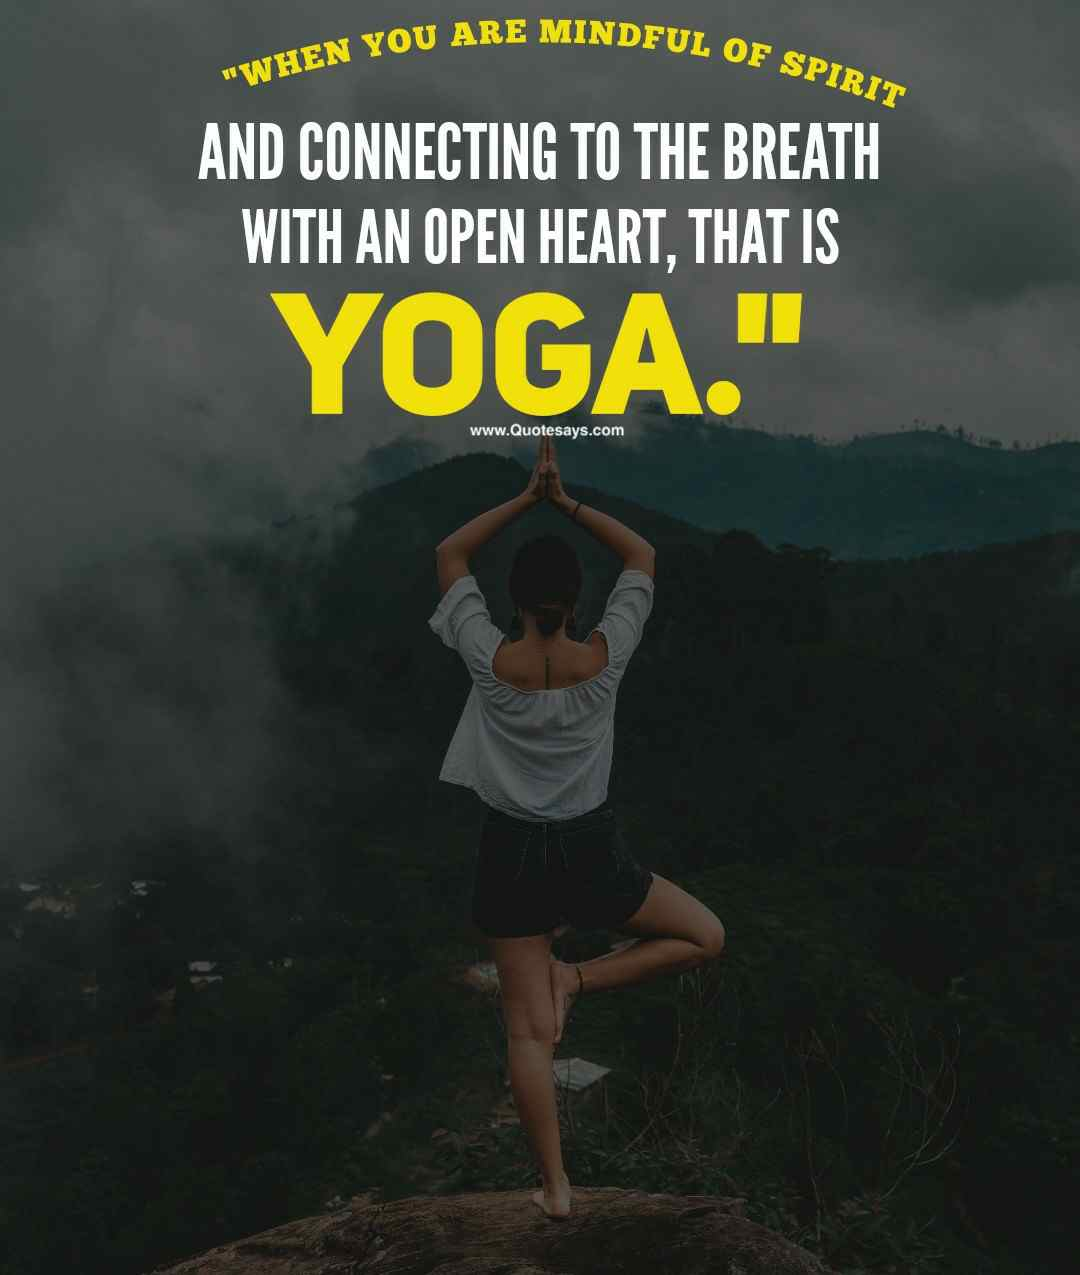 Yoga quotes. Inspired yoga quotes